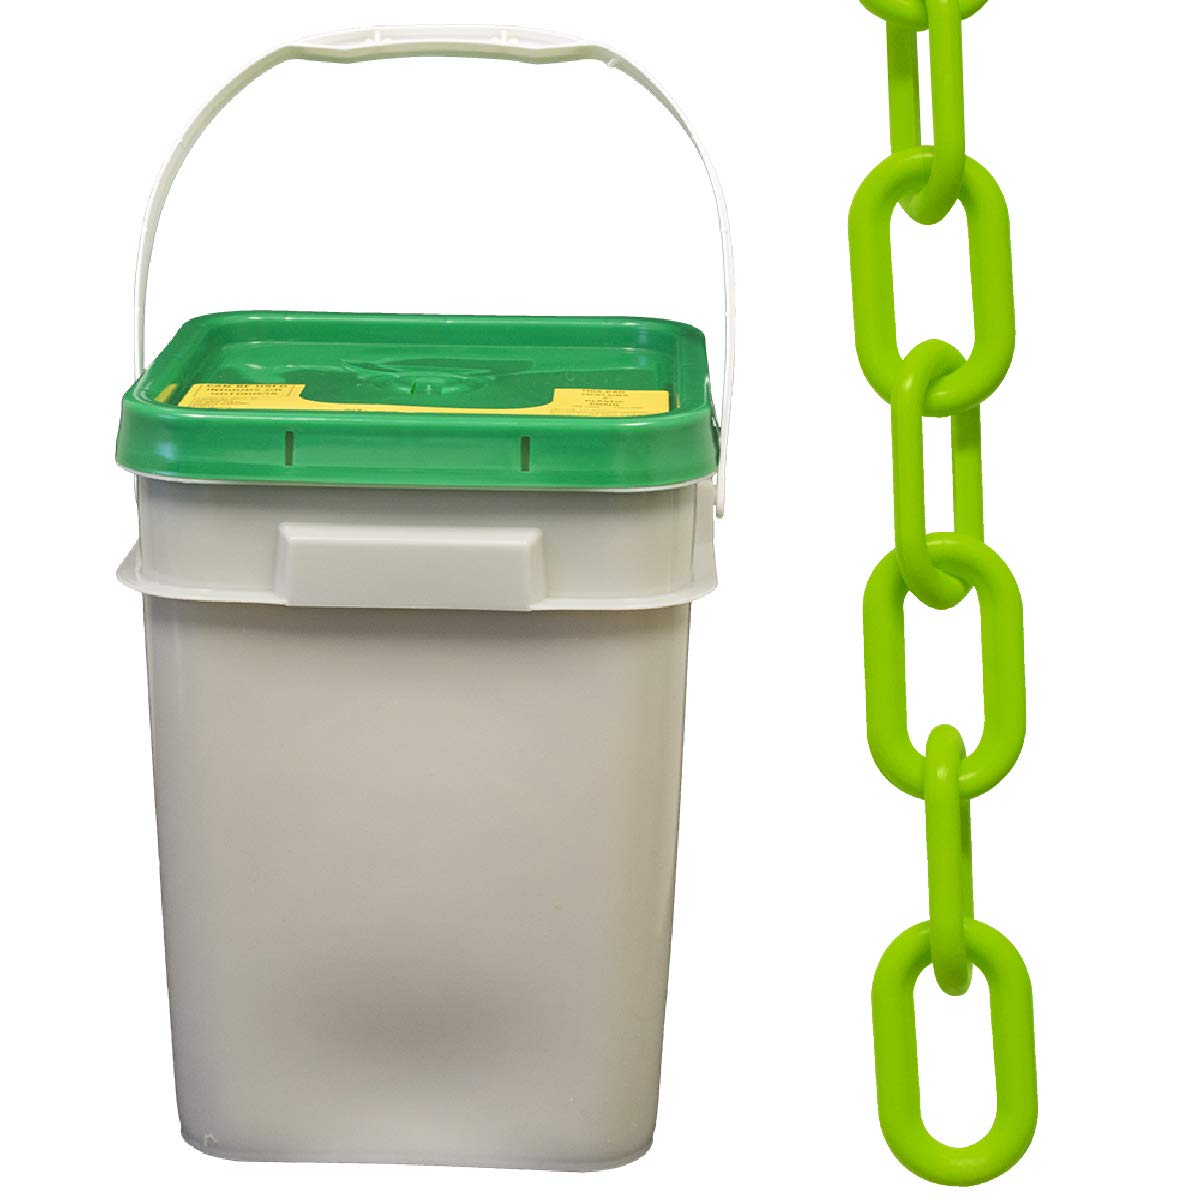 Mr. Chain Plastic Barrier Sale item Special price Pail Green 1.5-Inch Lin Safety